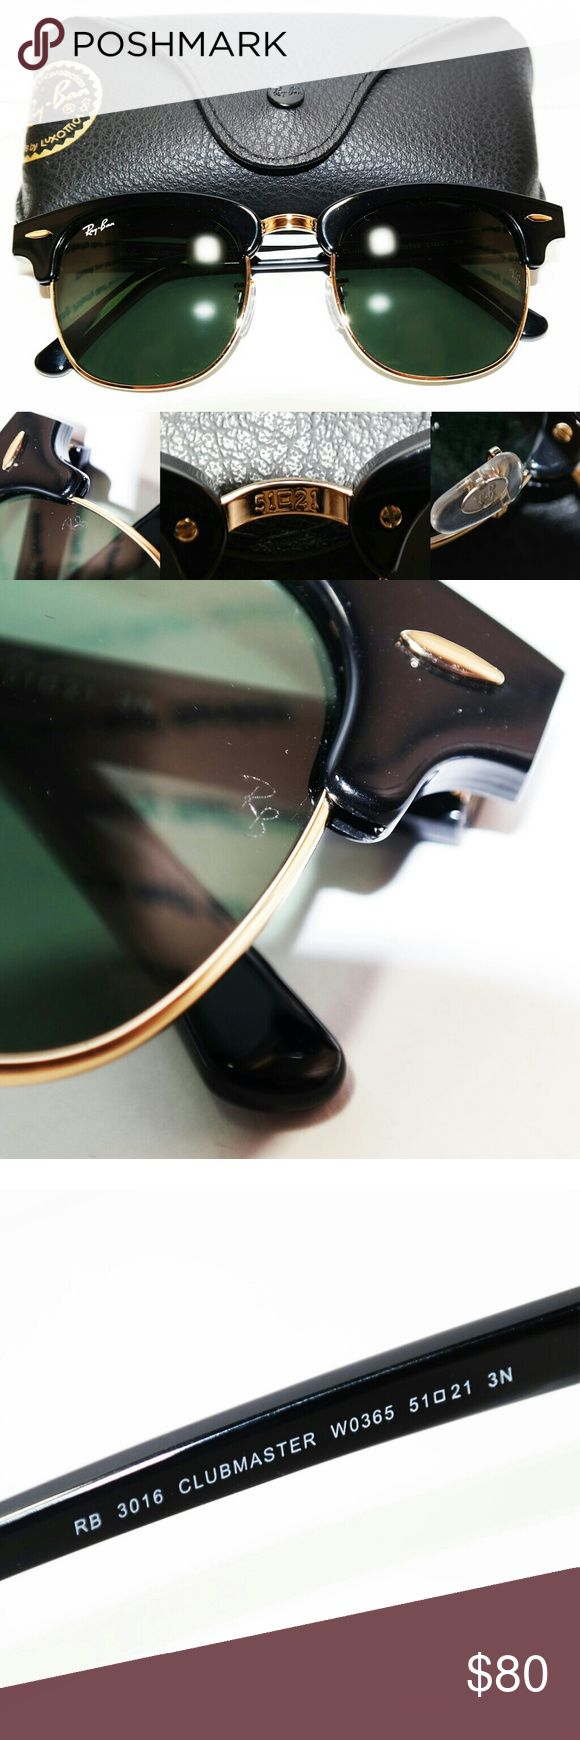 Ray Ban classic Clubmaster RB3016 51m G15 lens Brand new Ray Ban classic  black and gold Clubmaster RB3016 size 51m. It is the style with the black and gold frame with G15 lens.$80 price is firm. Not interested in trades at this time.  The sunglasses will be shipped out same day if the order is placed before 8pm (PST) and will be shipped out the following morning (if placed after that time). I ship out orders daily. Ray-Ban Accessories Sunglasses